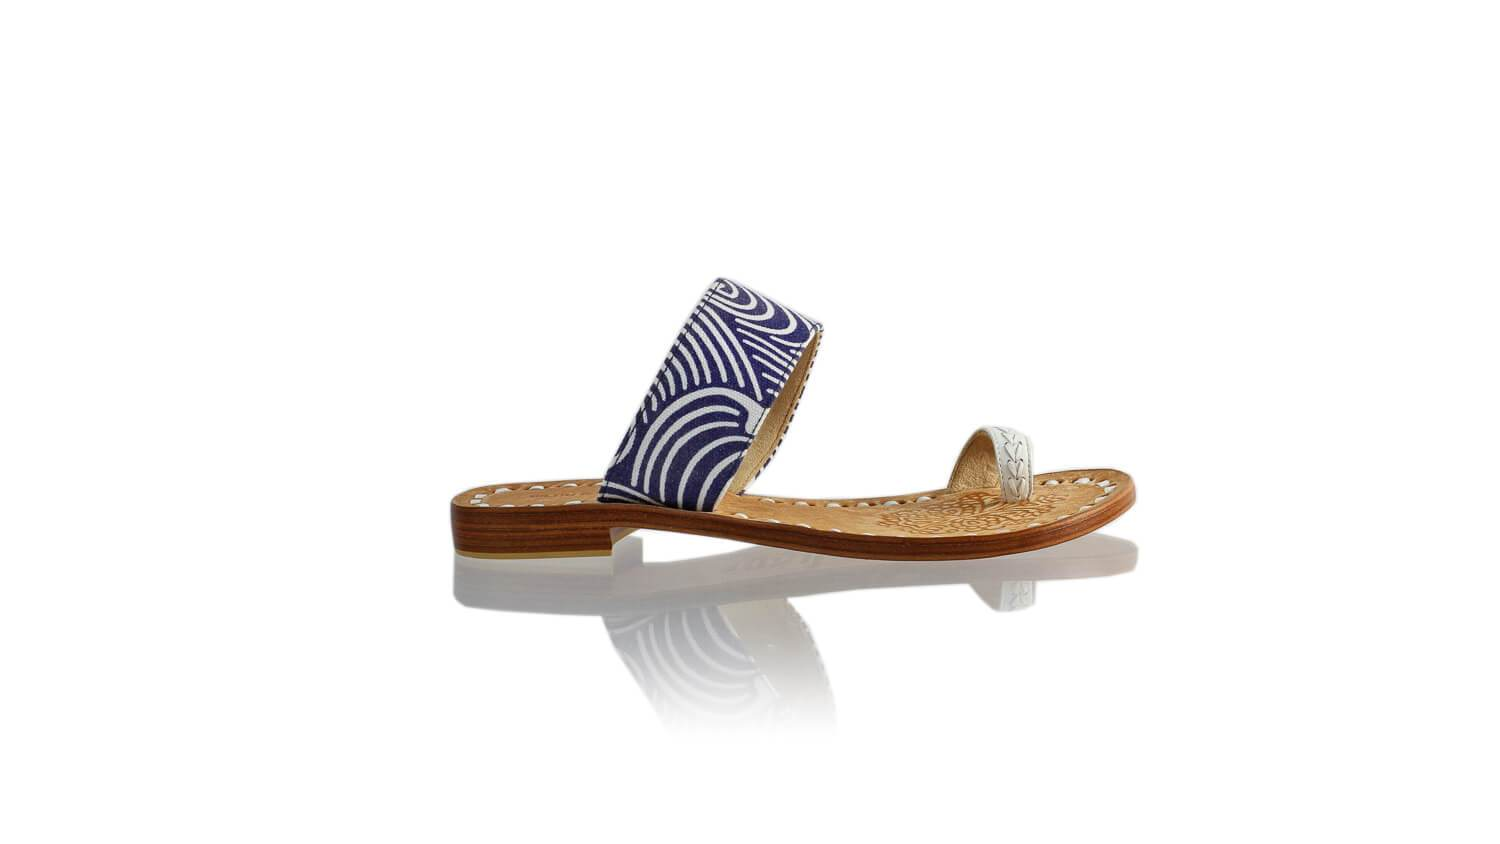 Leather-shoes-Arini 20mm Flat - White & Blue Canvas-sandals flat-NILUH DJELANTIK-NILUH DJELANTIK